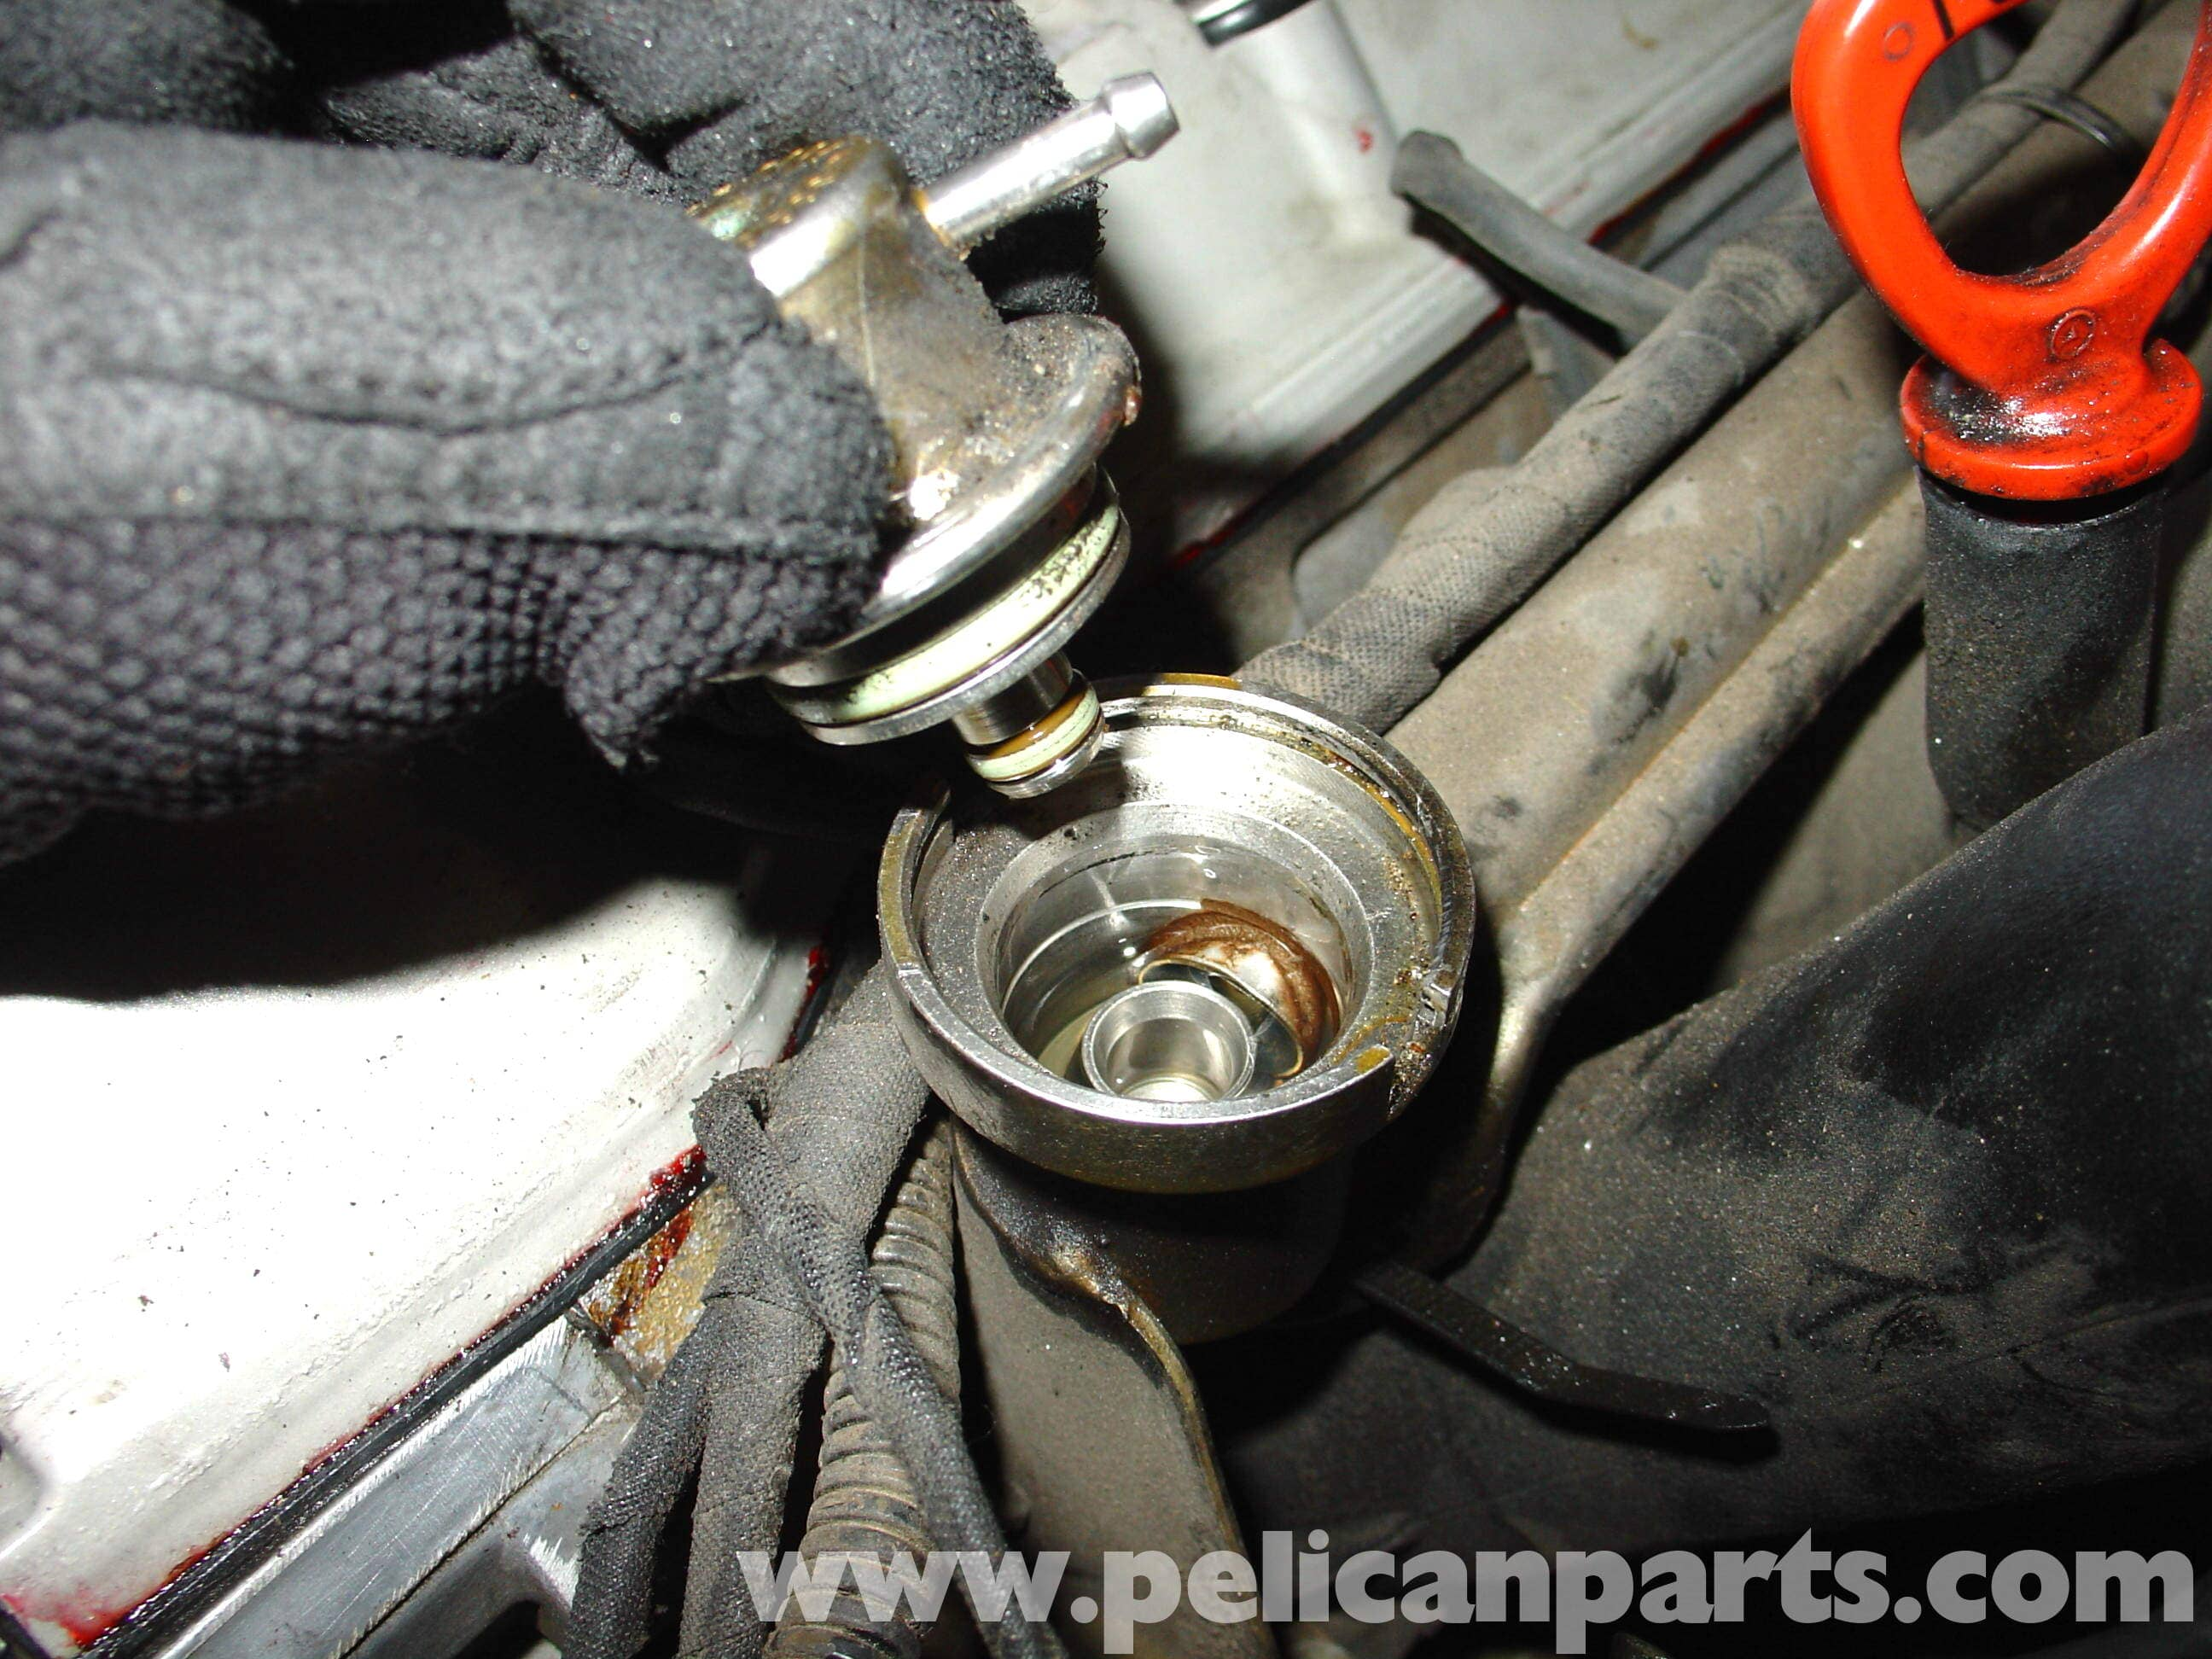 2005 Dodge Grand Caravan Fuel Filter Mercedes Benz W210 Pressure Regulator Replacement 1996 03 Large Image Extra